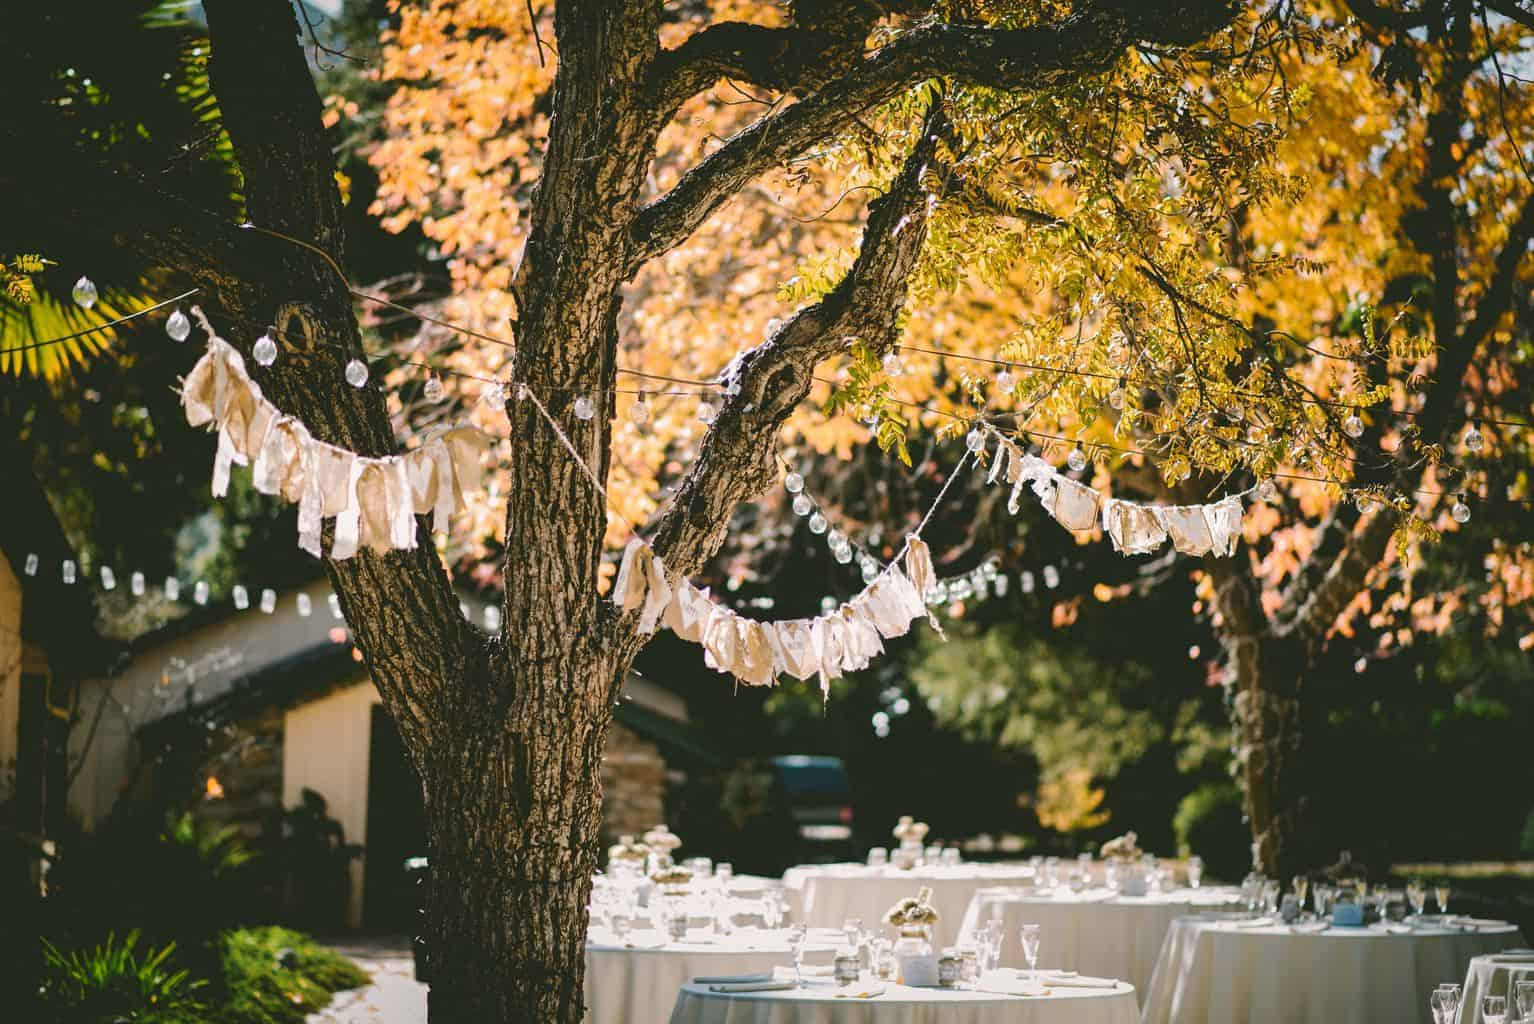 How to Plan an Elegant Wedding on a Budget